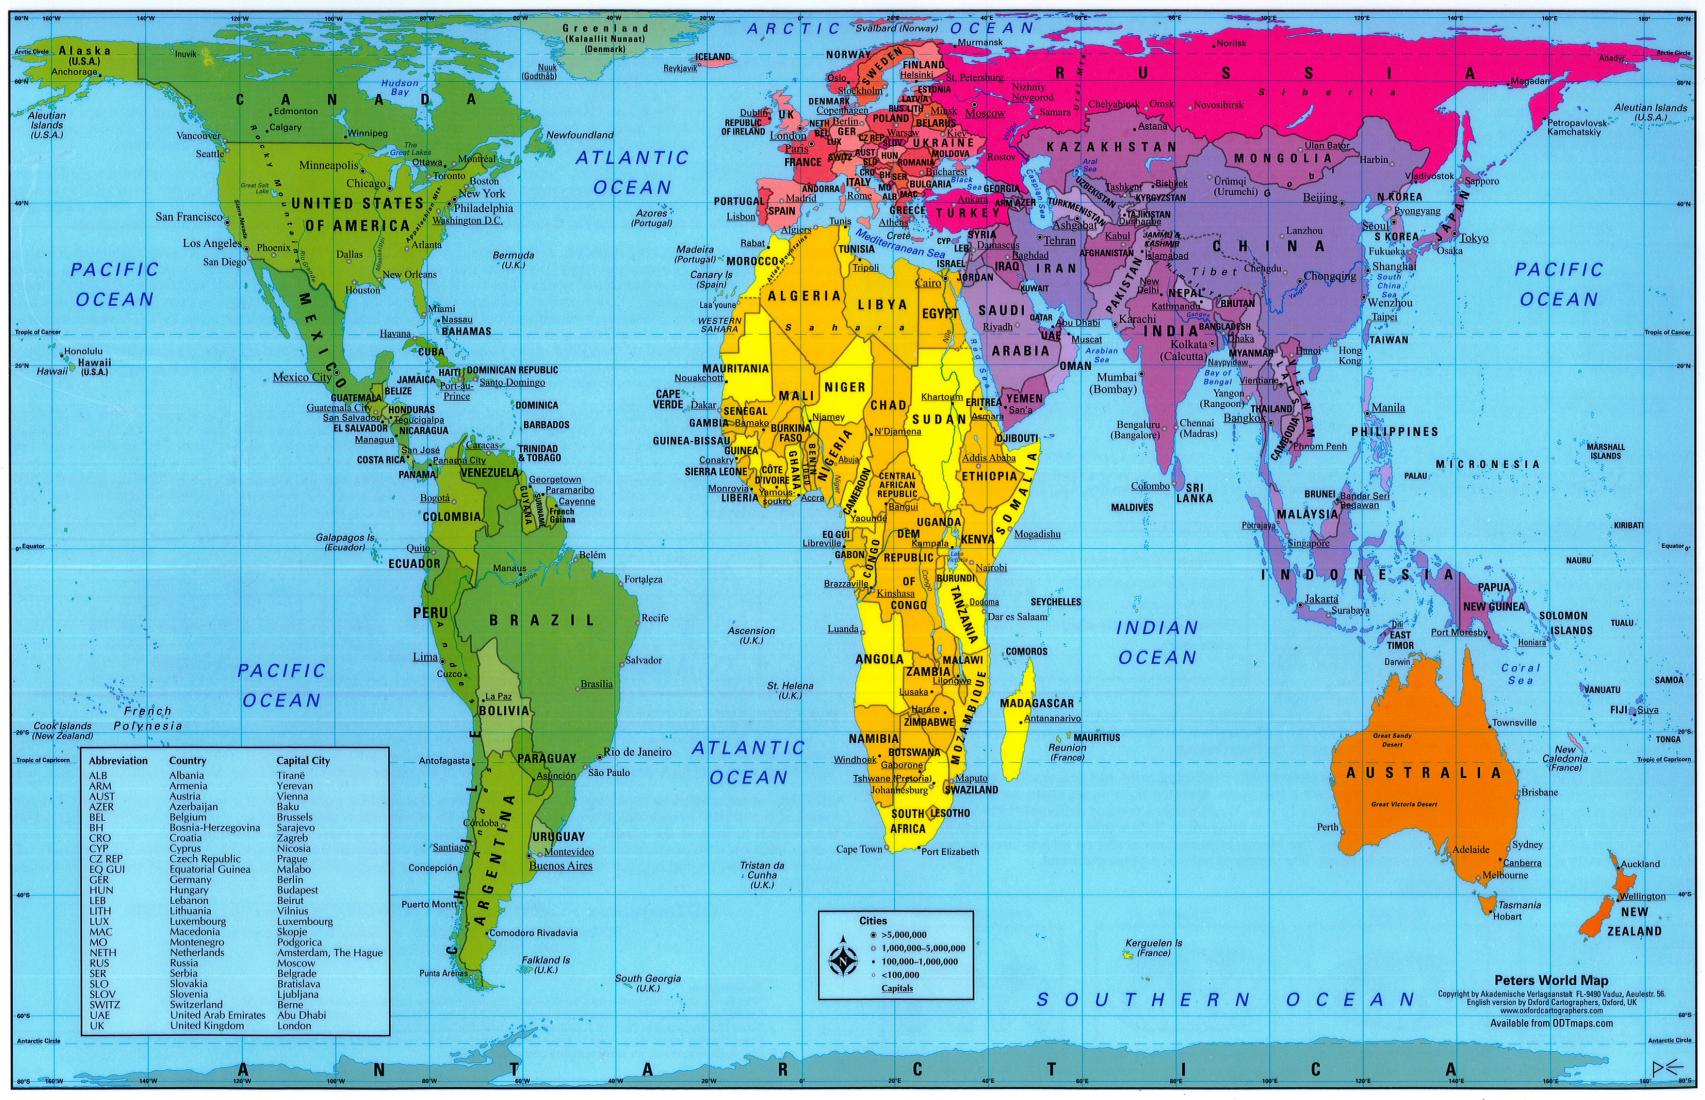 Taos digimerge net jeoytk. Clipart real world map